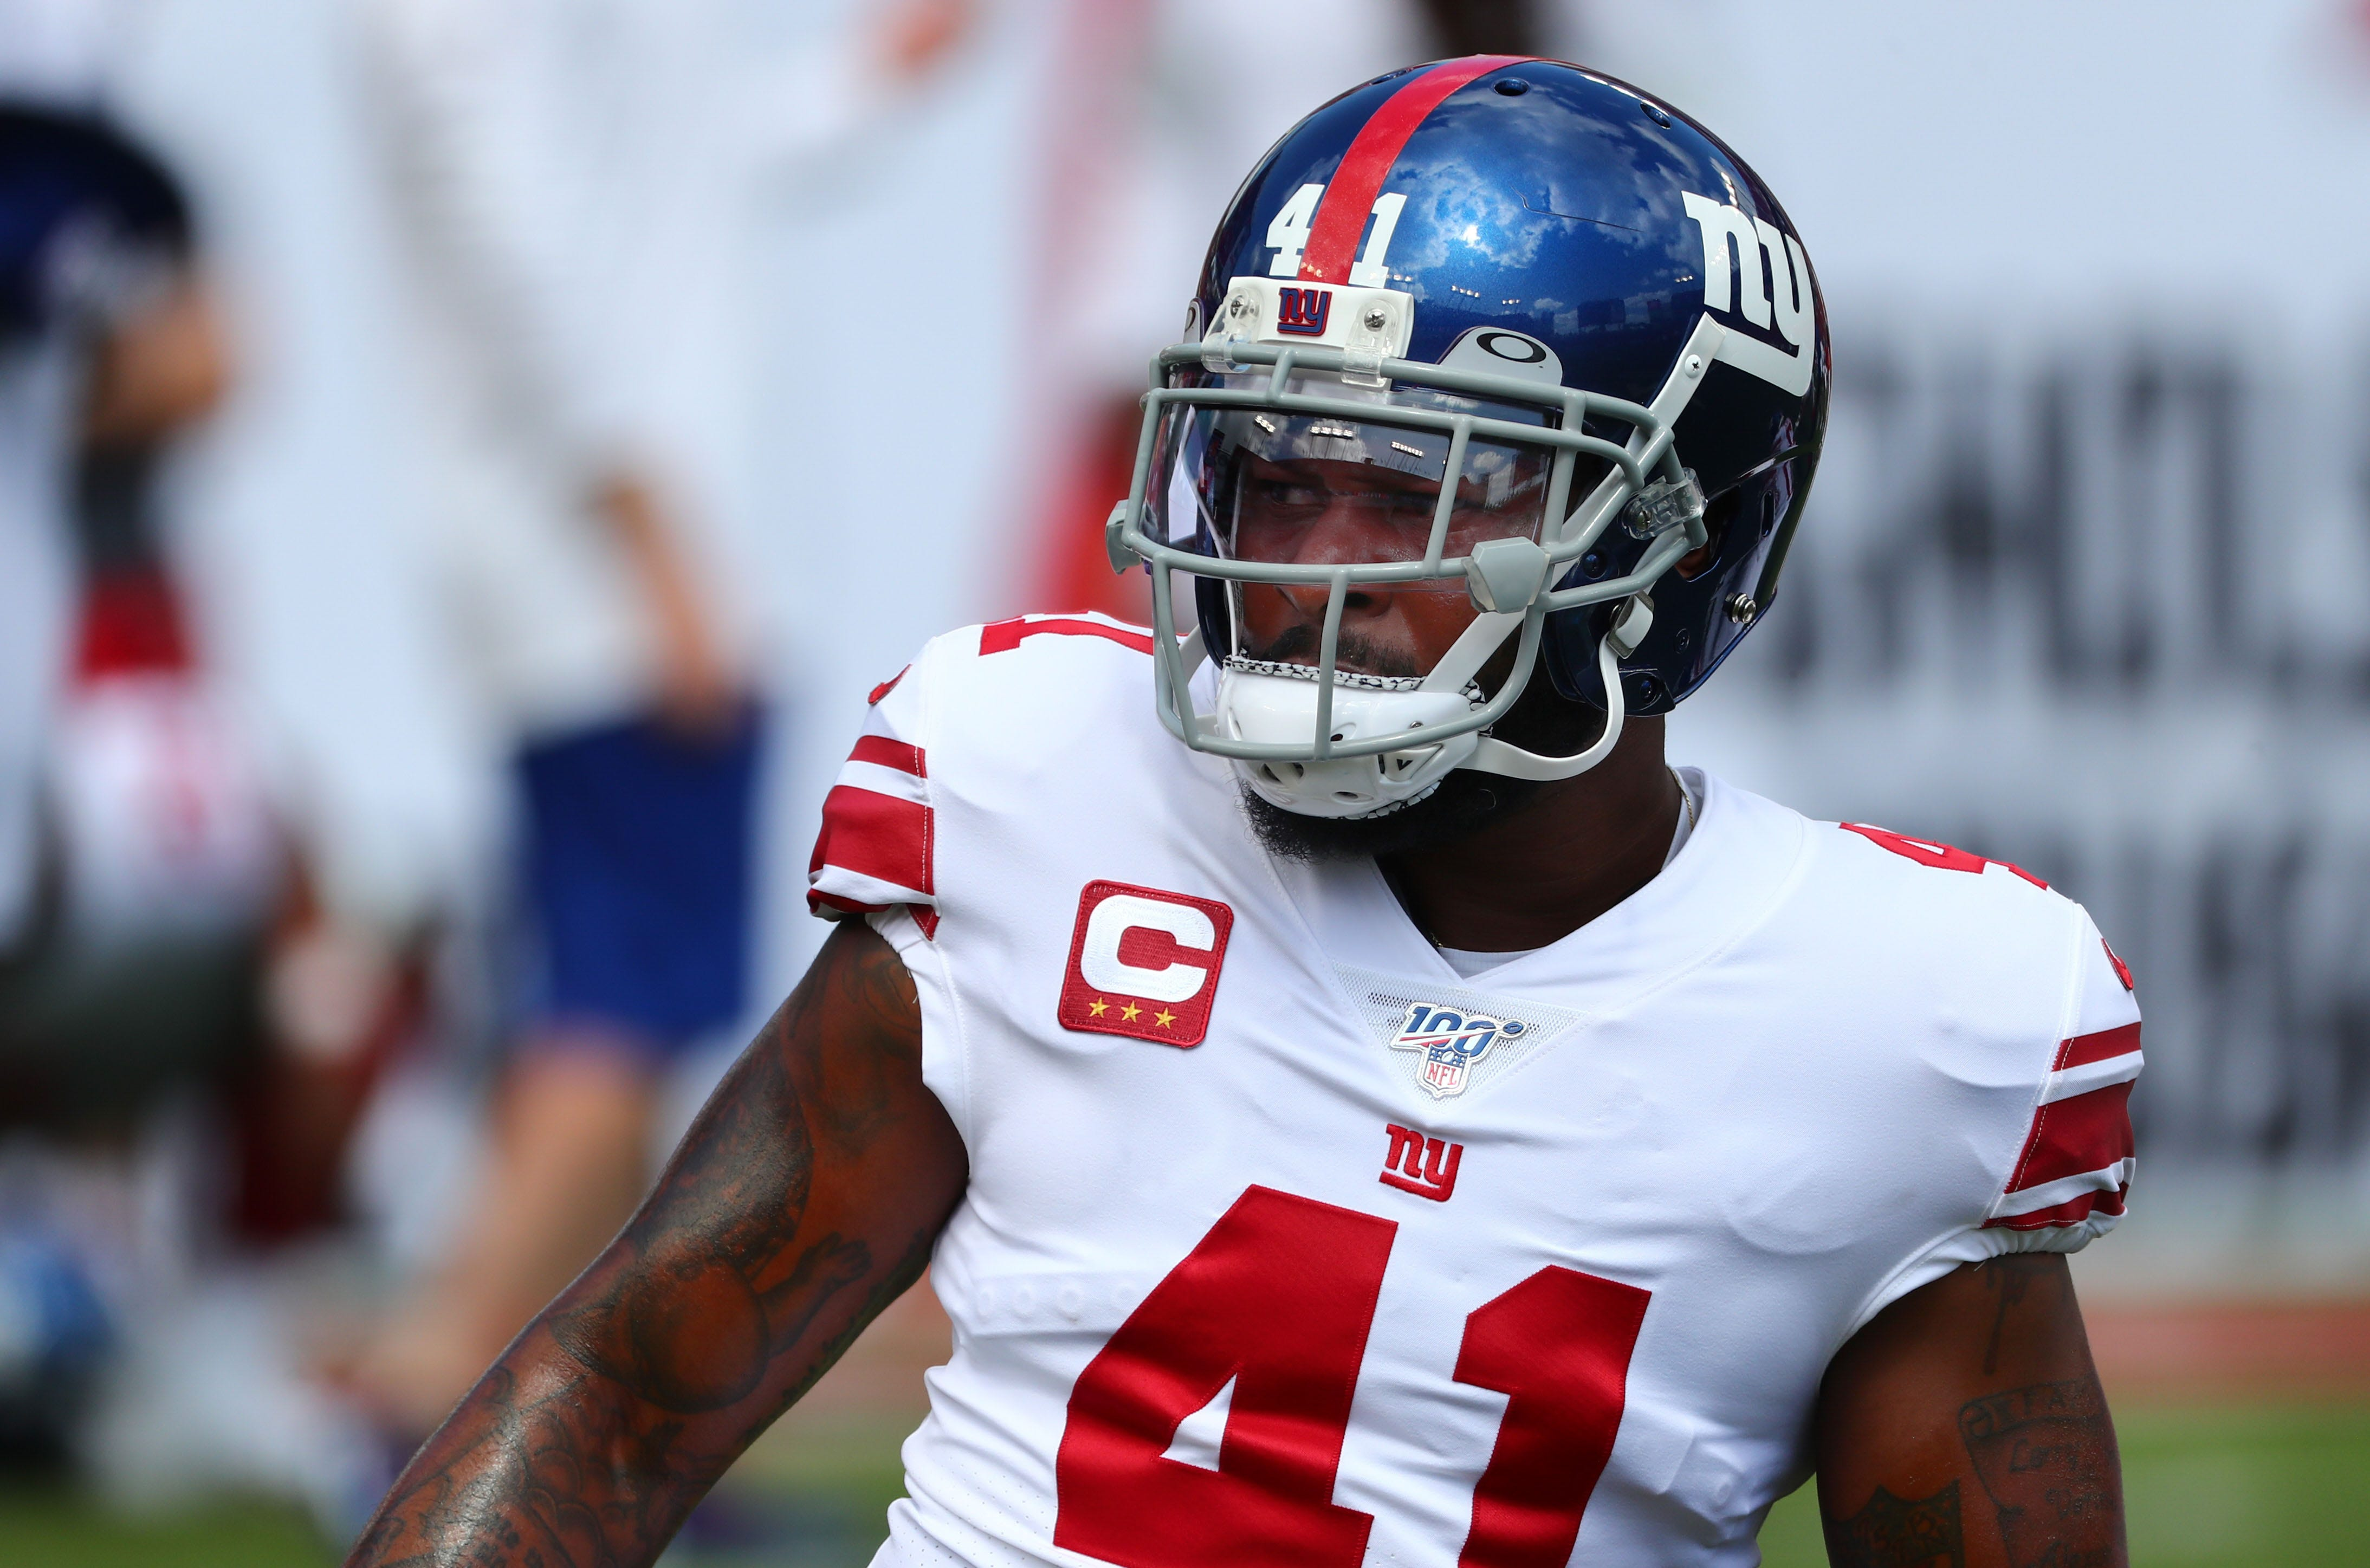 'That's when the true character comes out': How 35-year-old DB Antoine Bethea forges on in Giants' trying season